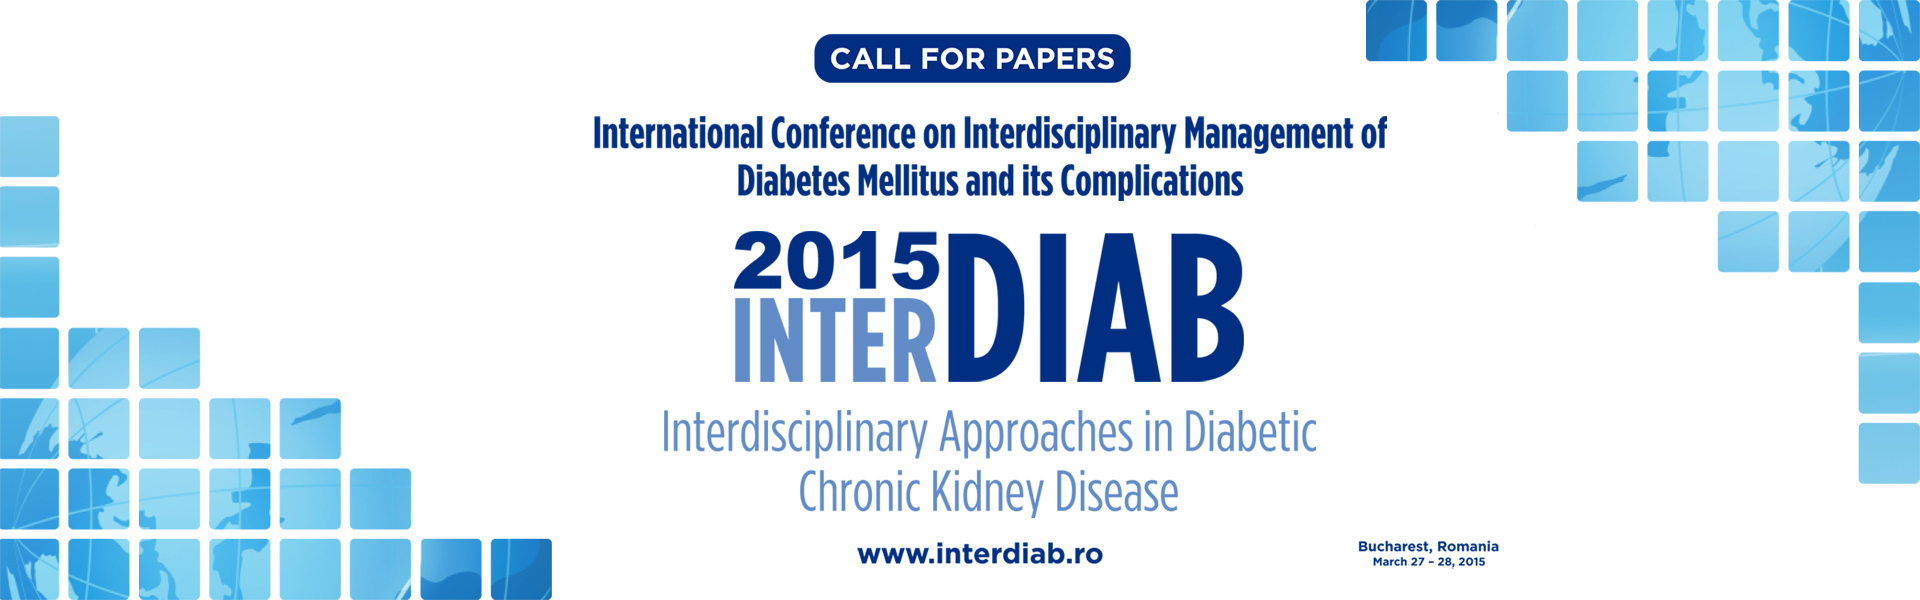 Call for Papers Interdiab 2015